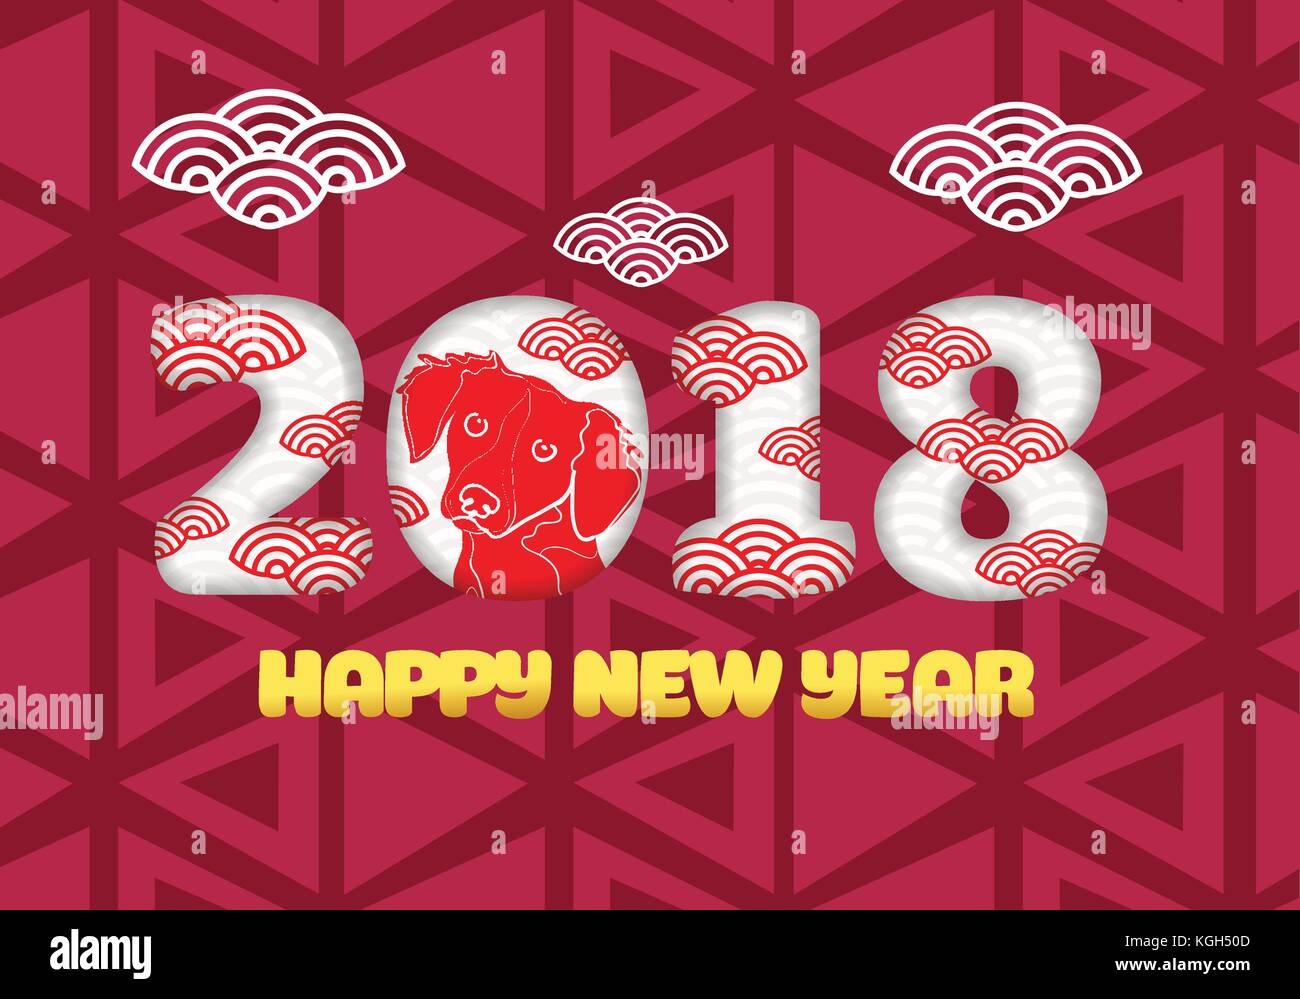 chinese new year 2018 festive vector card design with cute dog zodiac symbol of 2018 year